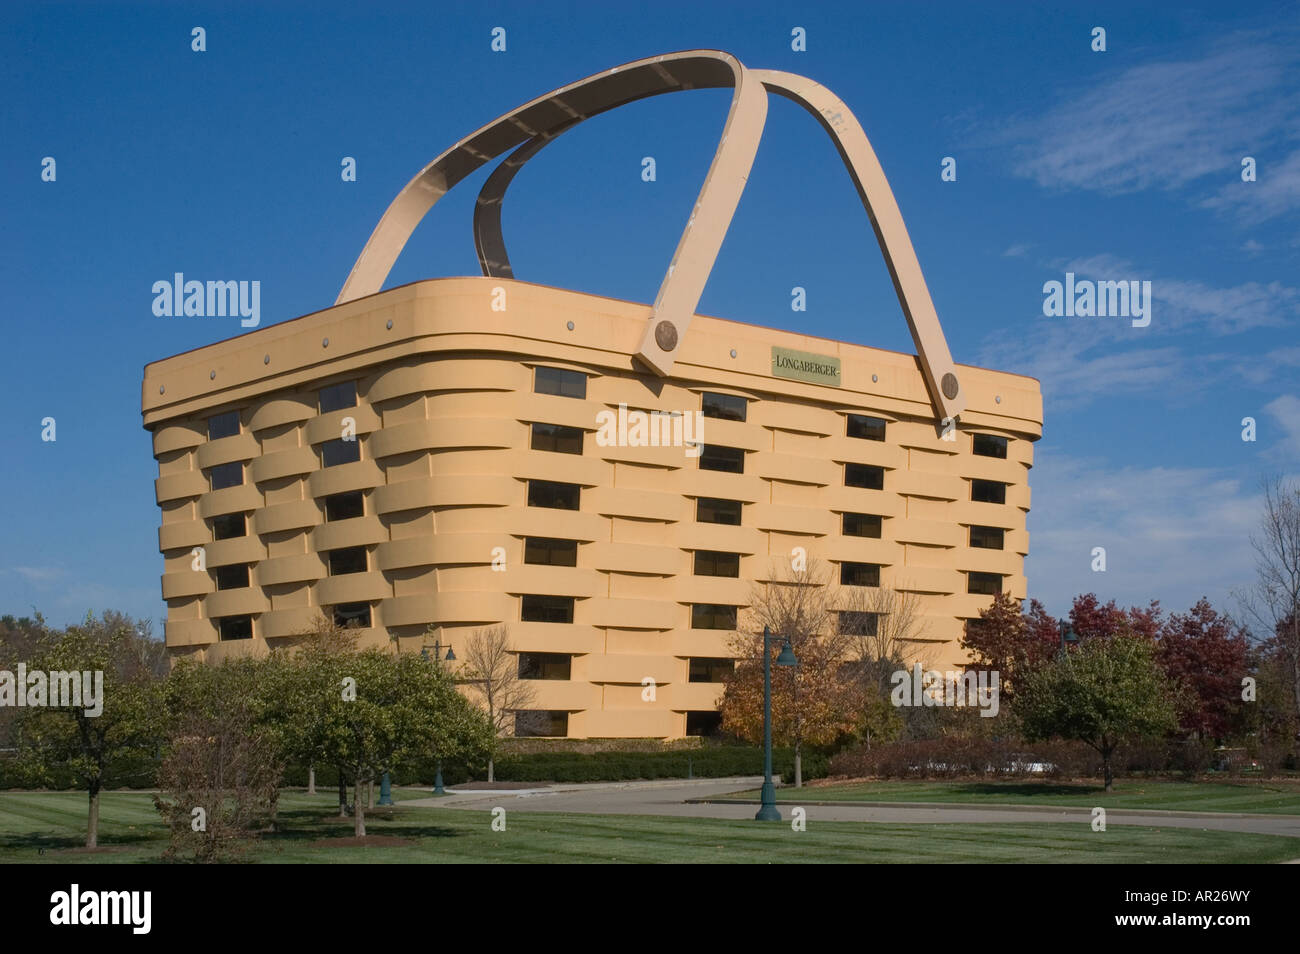 longaberger baskets company headquarters dresden ohio usa. Black Bedroom Furniture Sets. Home Design Ideas